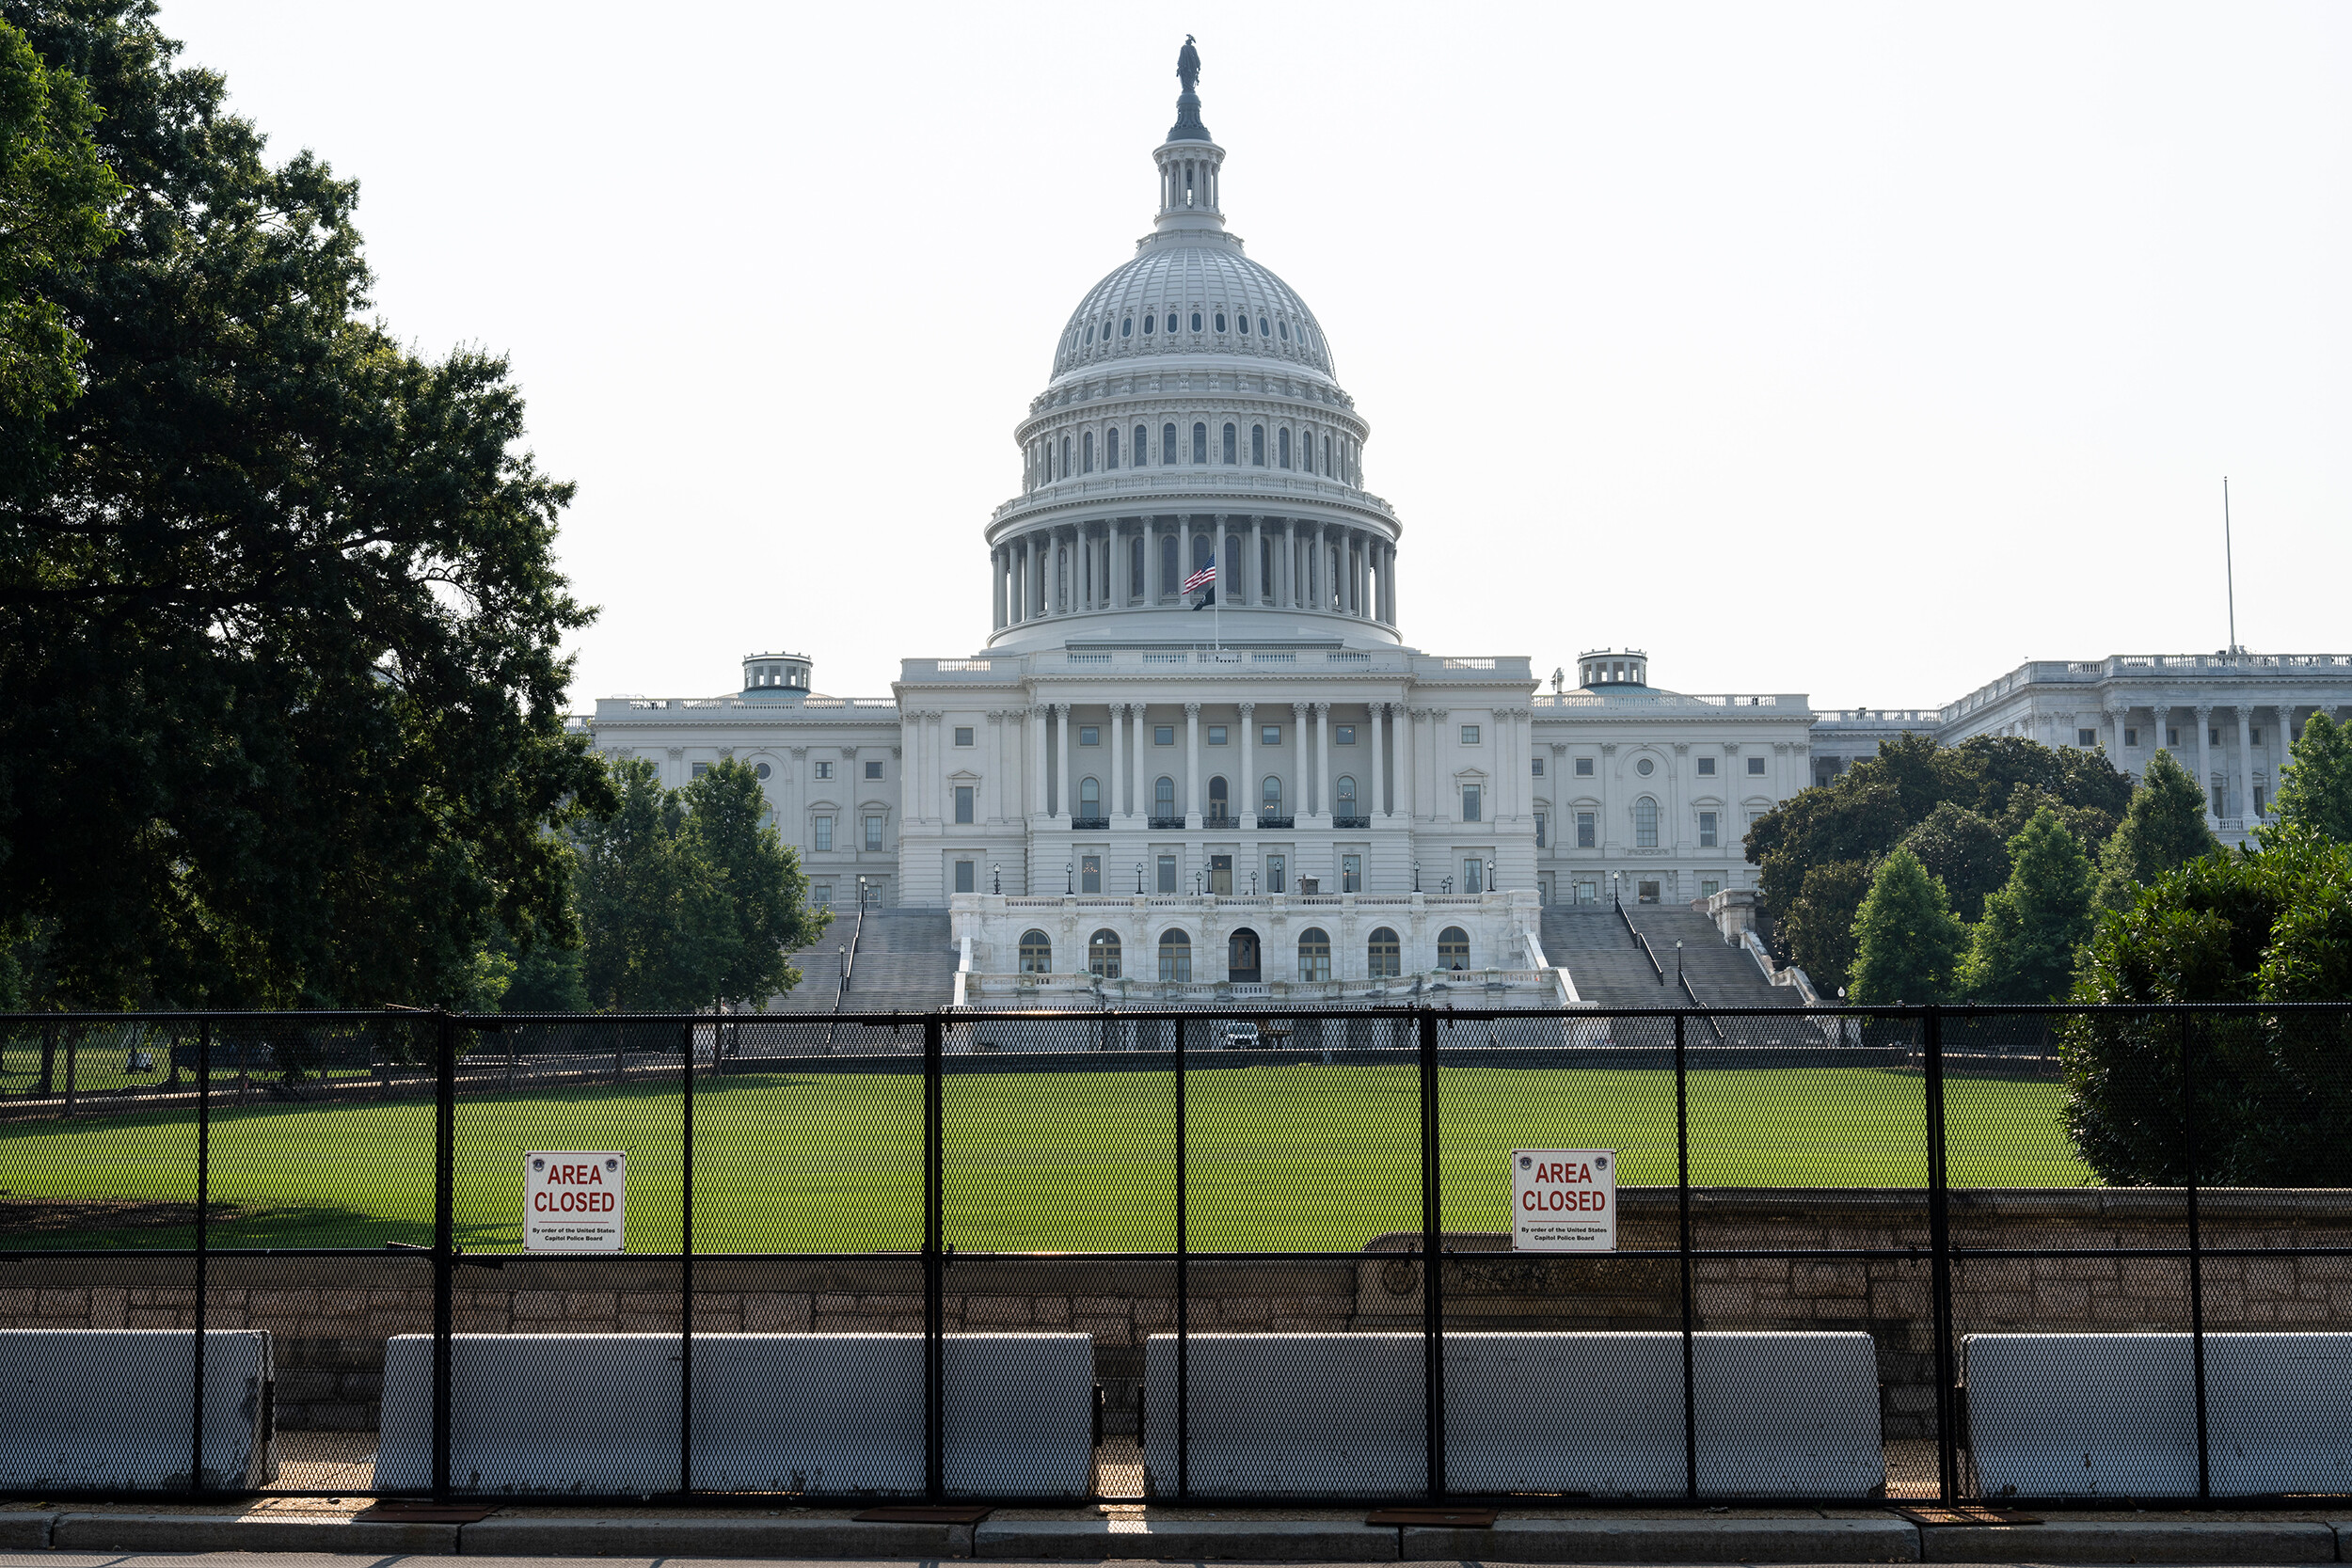 US Capitol Police says fencing around Capitol building set to be removed as early as Friday